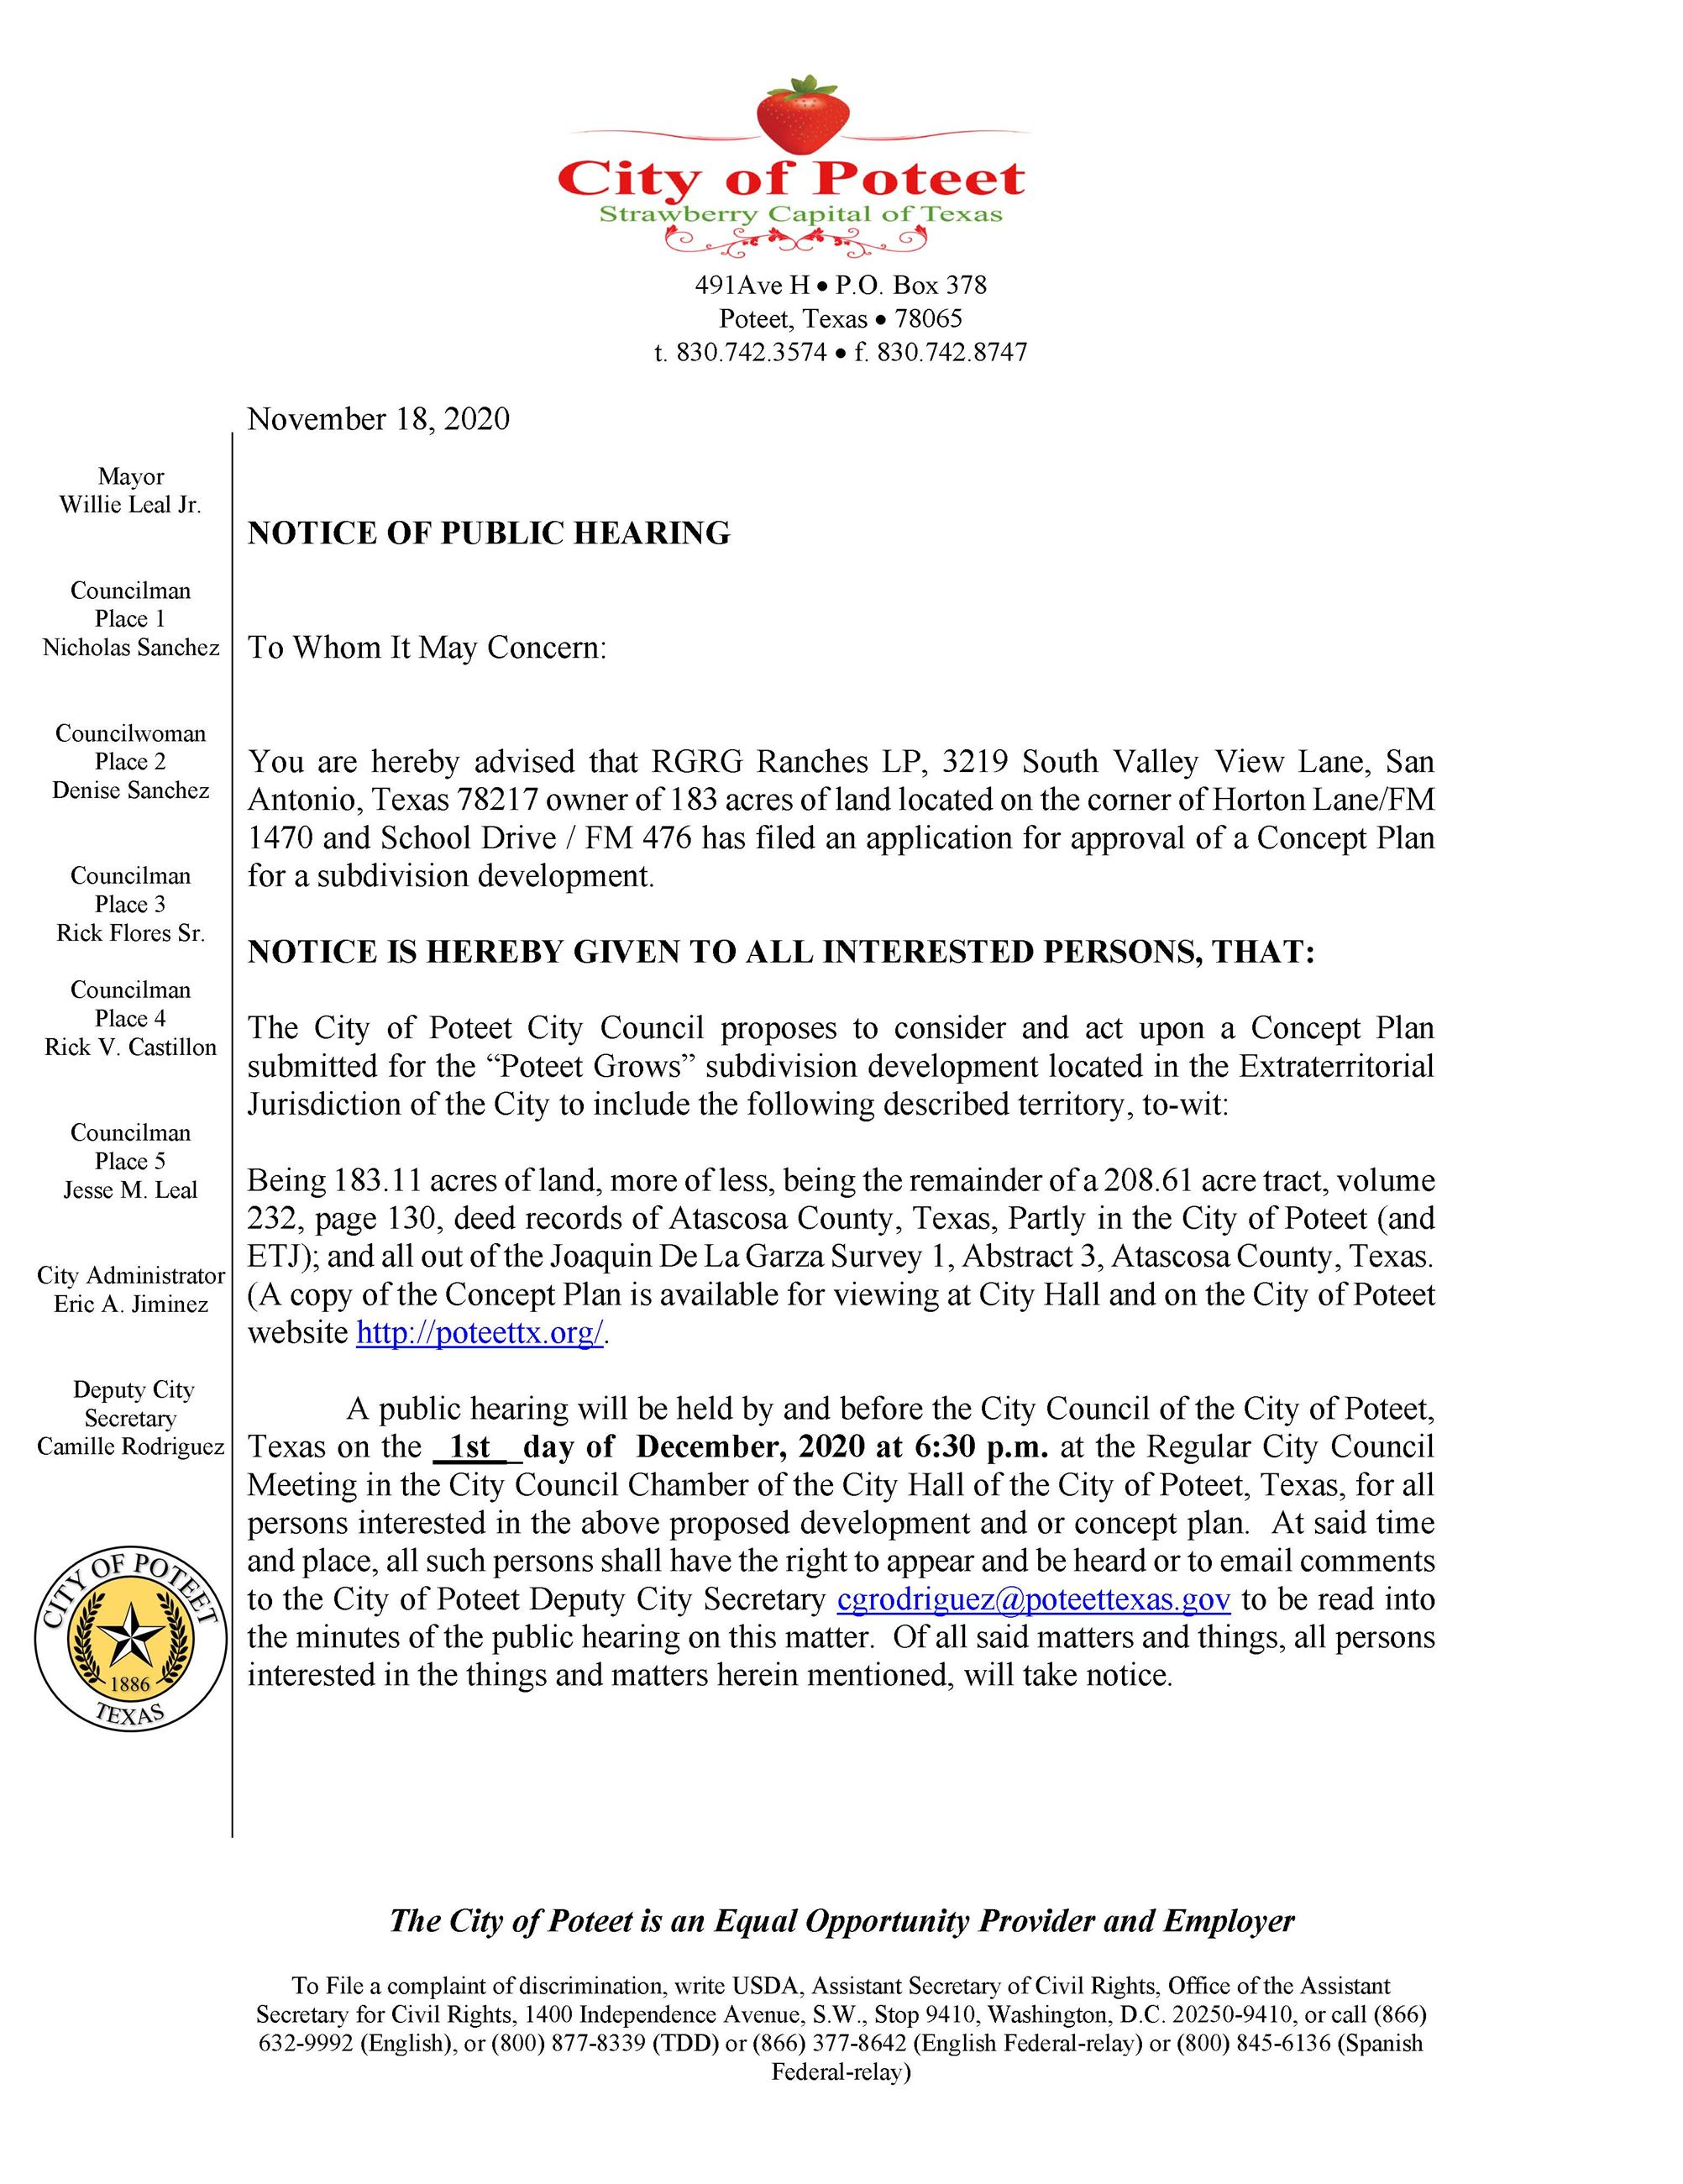 Concept Plan Notice of Public Hearing_11182020